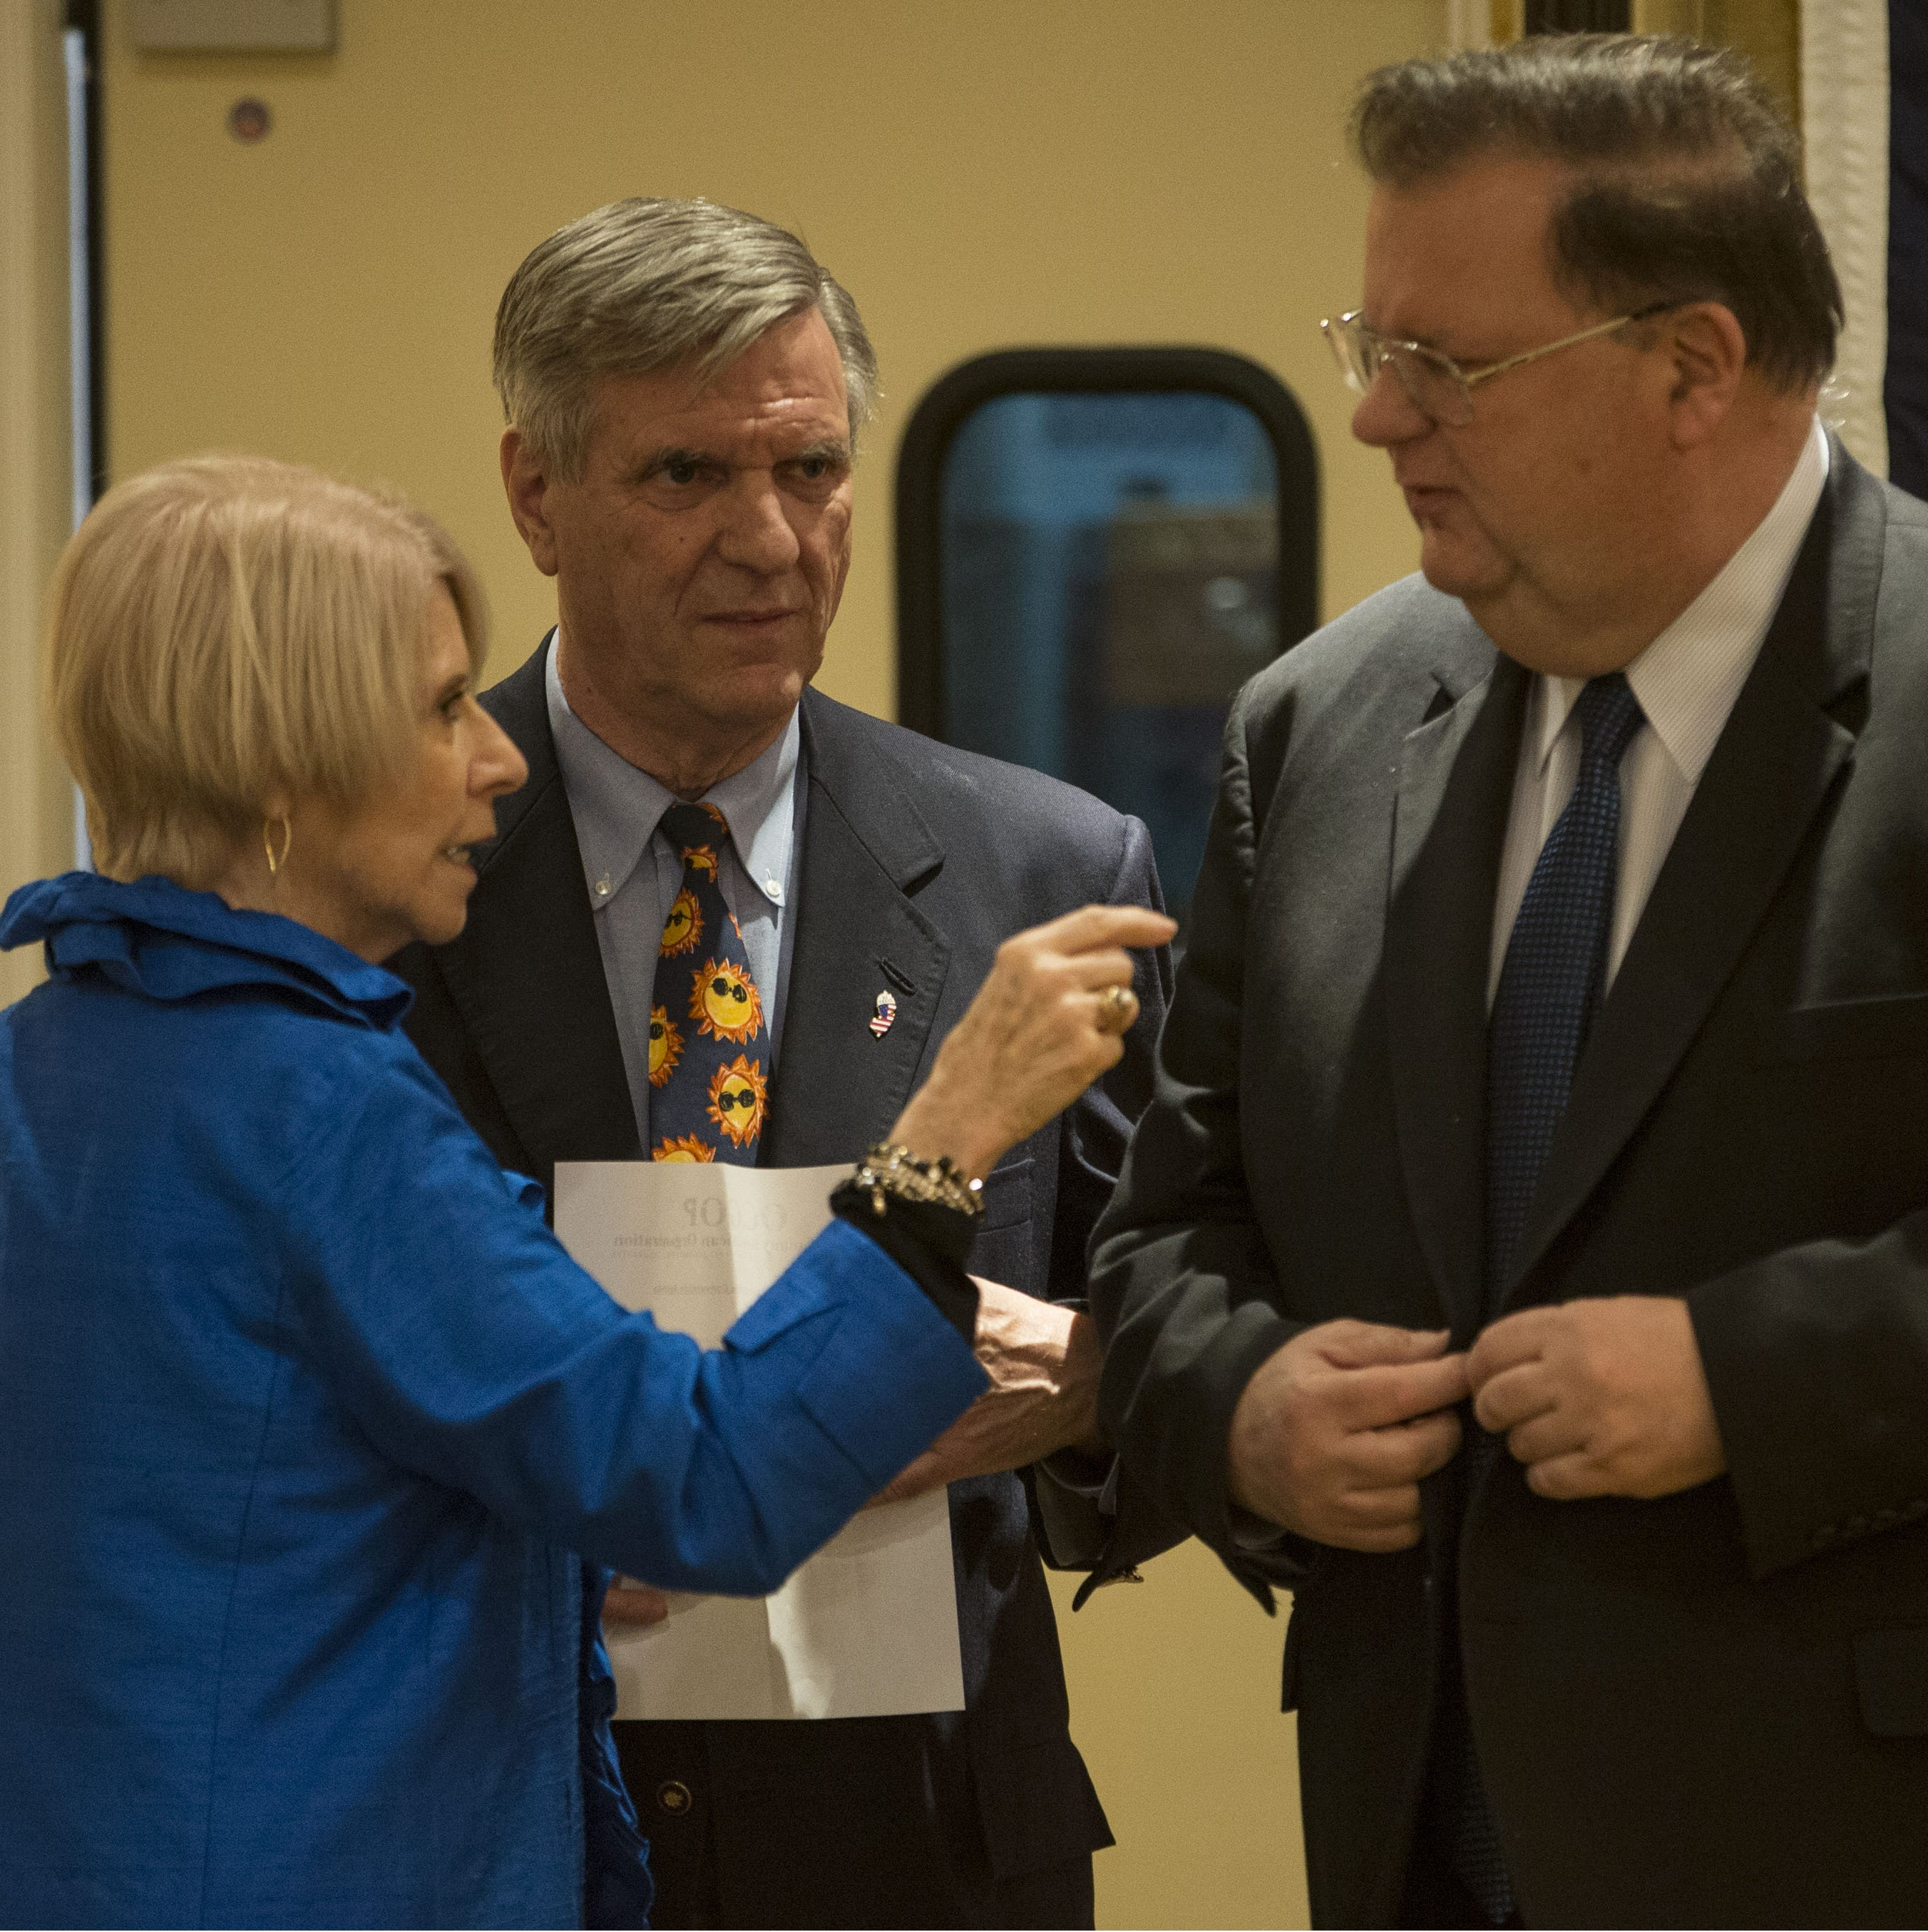 George Gilmore tax trial: Pressure builds on Ocean County GOP leader to resign